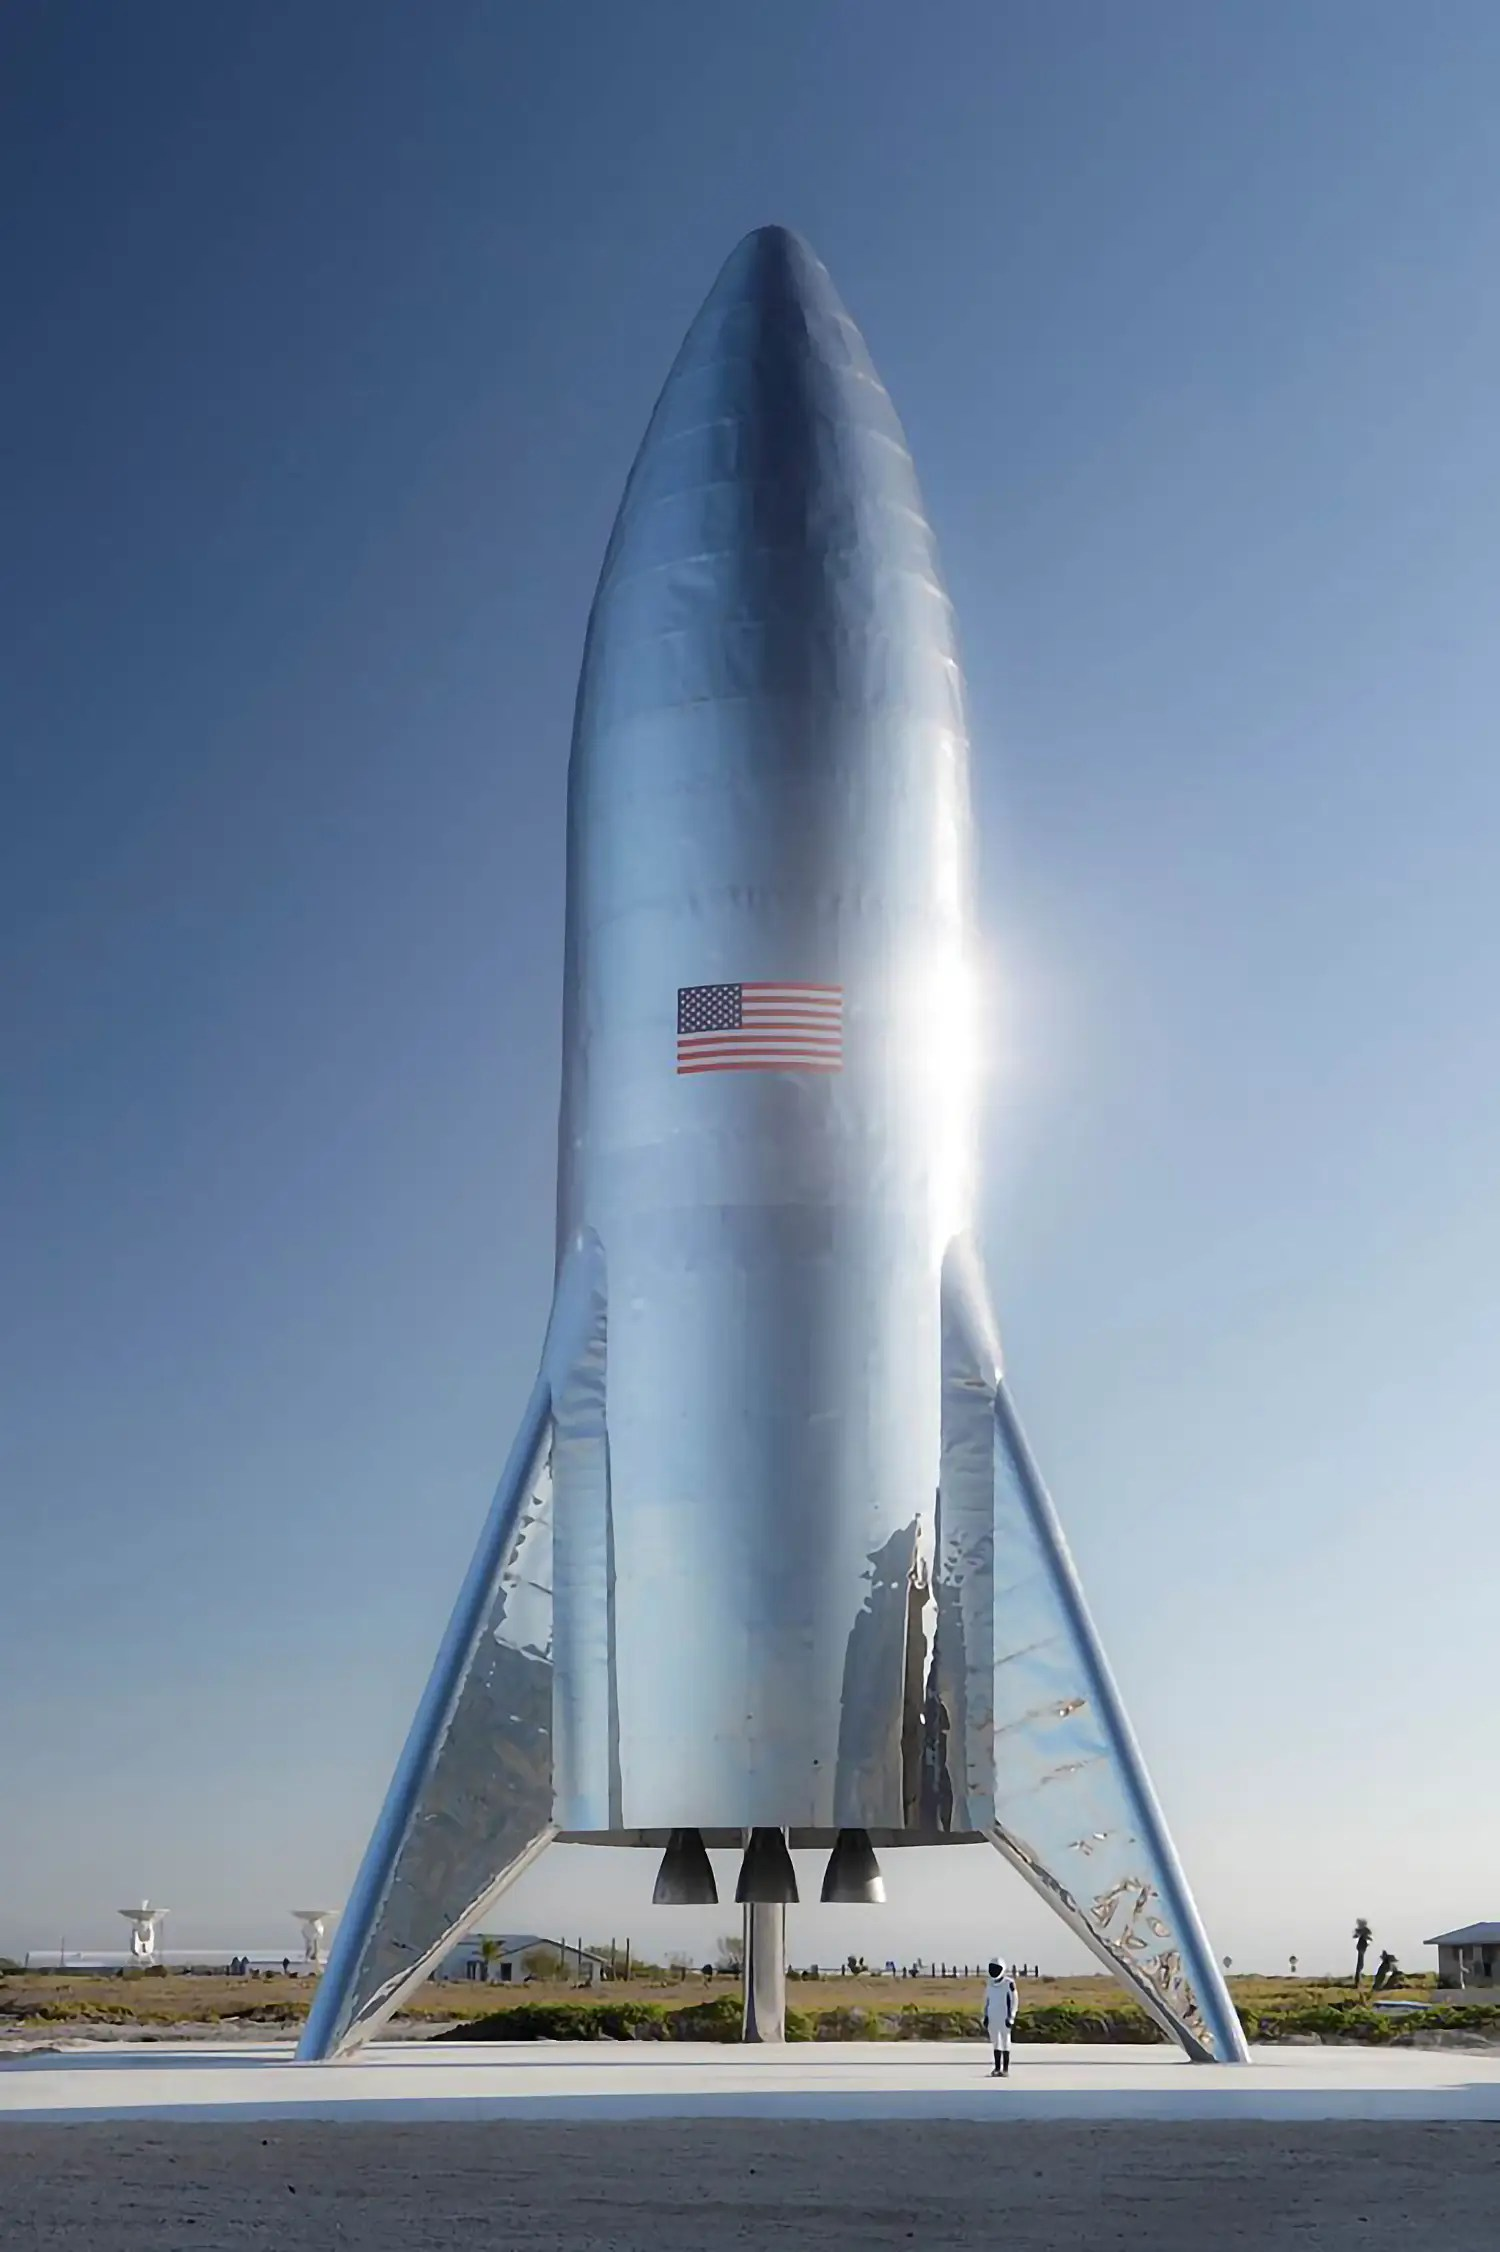 starship test hopper stainless steel spacesuit actual photo boca chica brownsville texas launch site elon musk twitter january 2019 DwmagBZX4AEbUN enlarged